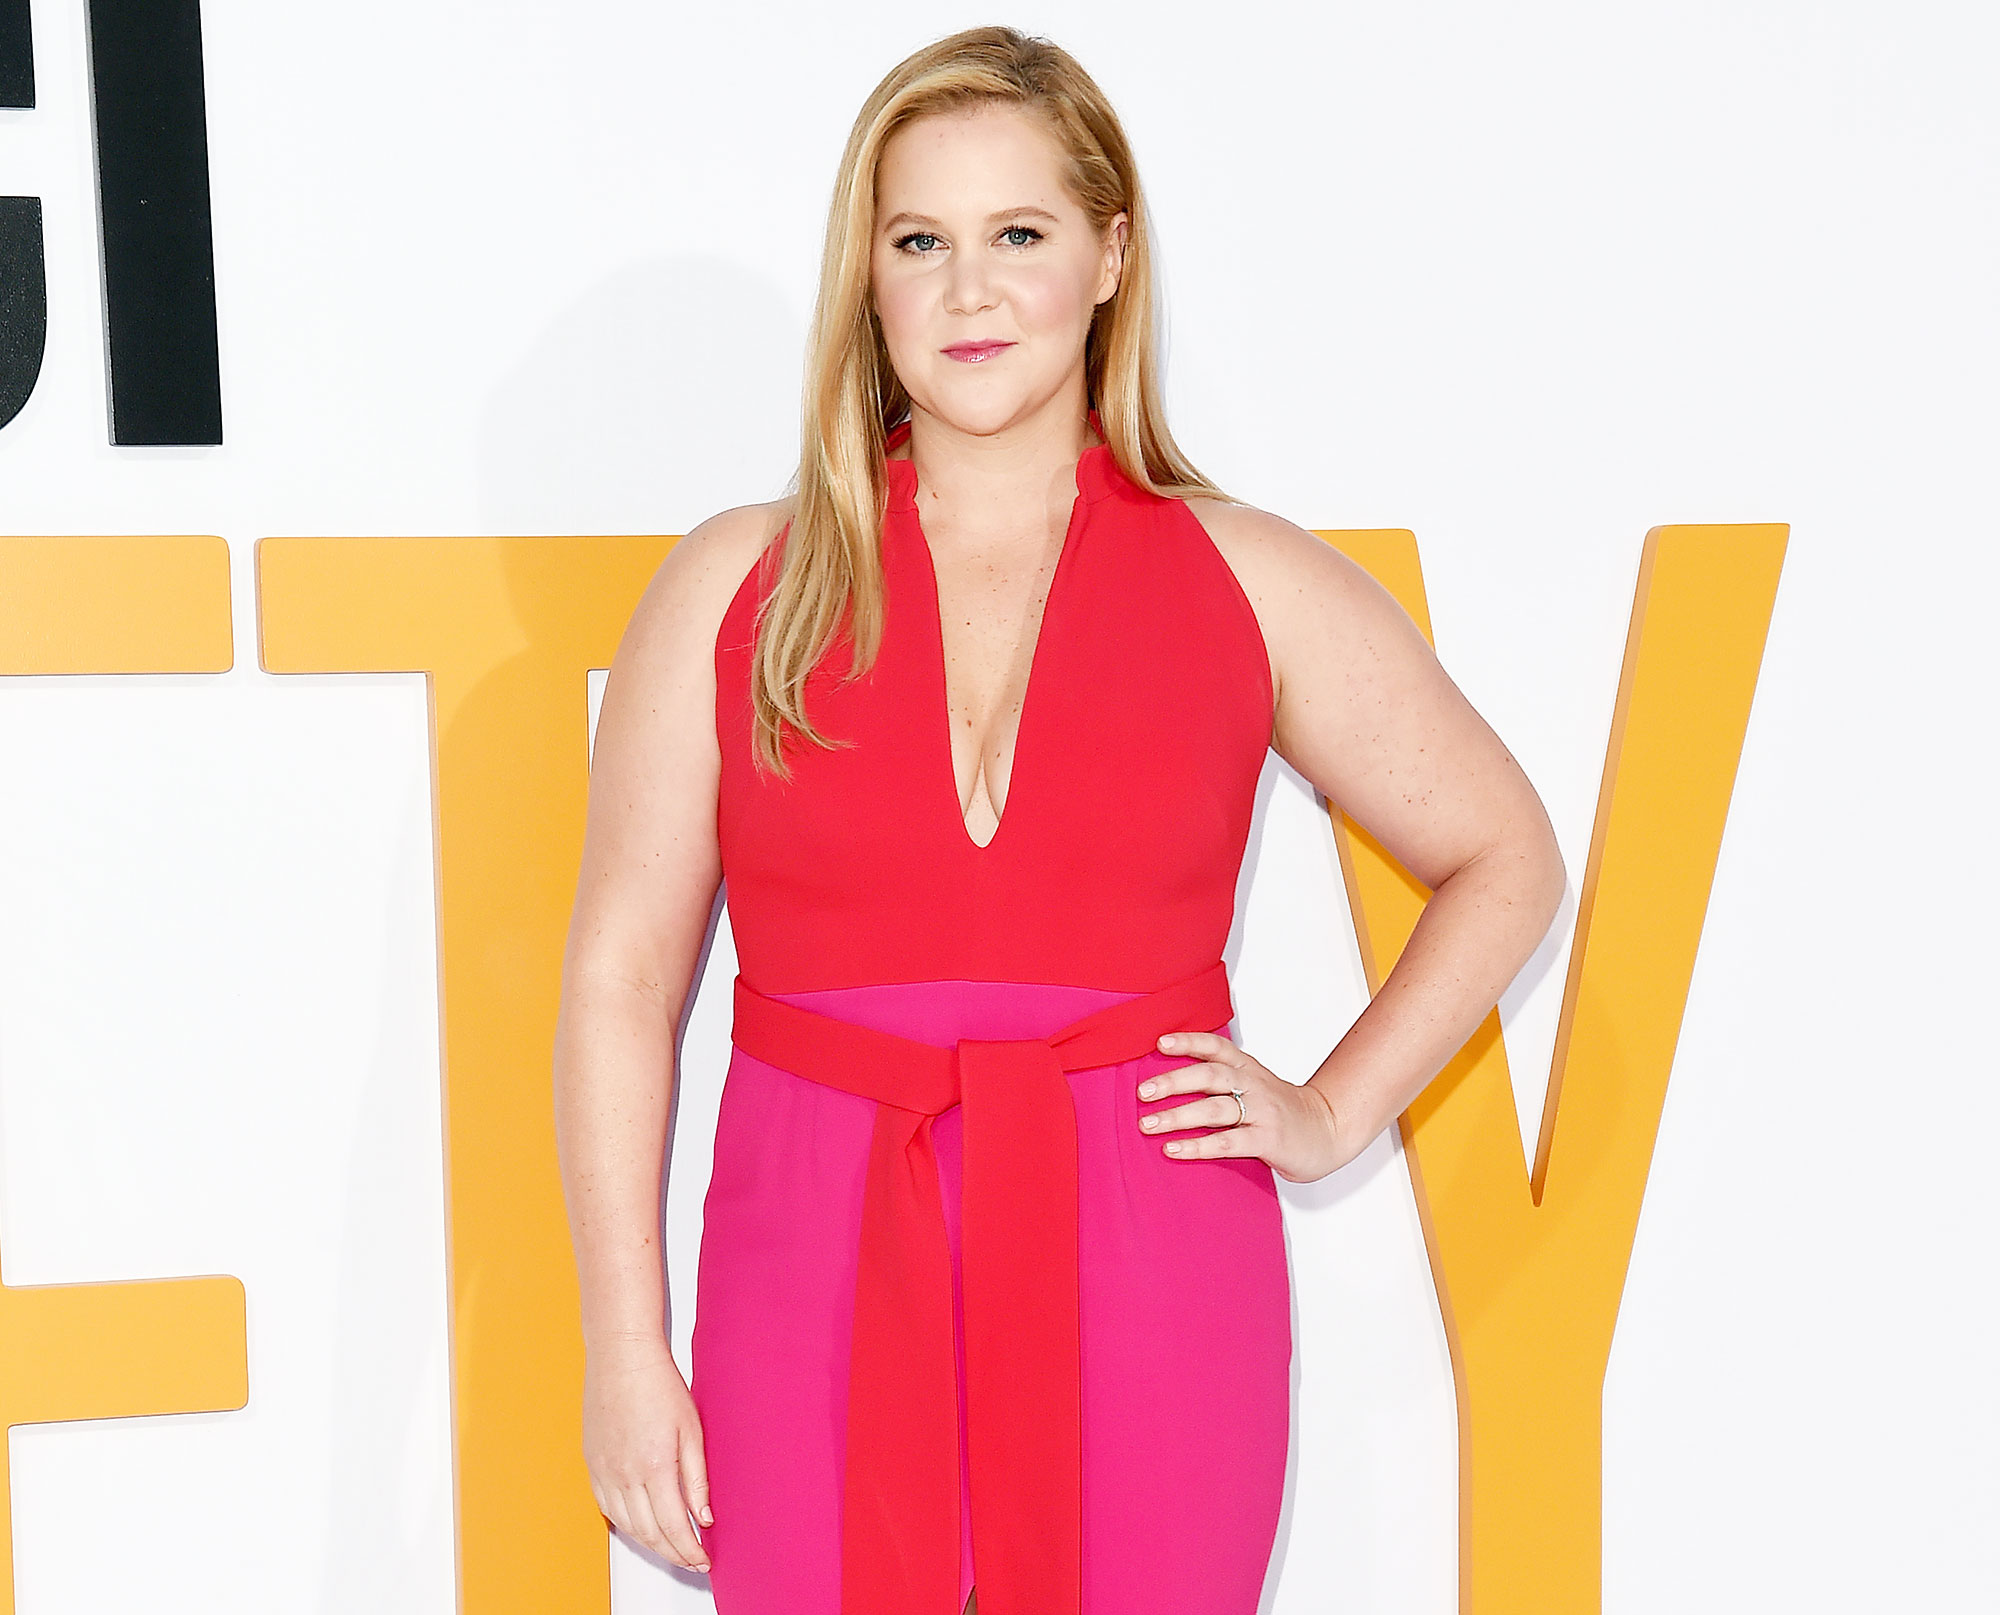 6a2b7decc Amy Schumer Hits Stage 2 Weeks After Giving Birth: 'I'm Back'